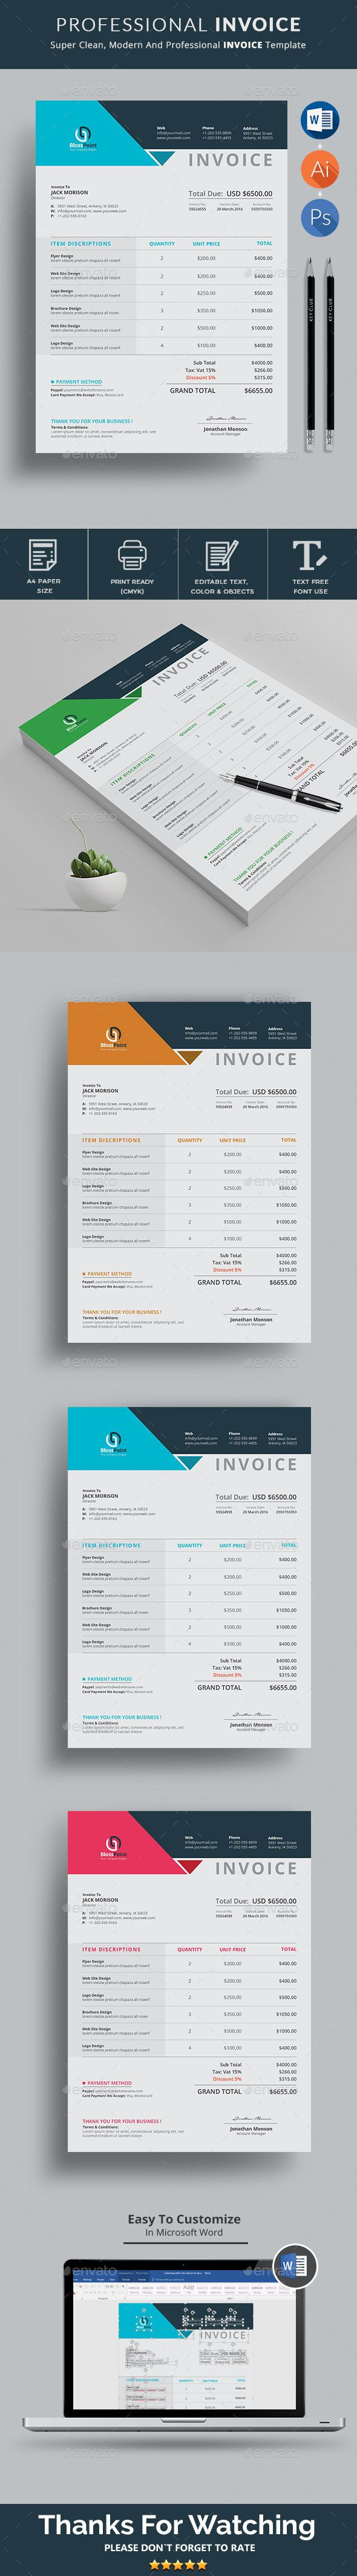 Free Printable Blank Invoice Pdf En Iyi  Fikir Create Invoice Pinterestte Petty Cash Receipt Book Pdf with Dealer Invoice For New Cars Word Invoice Template Use This Clean Invoice For Personal Corporate Or  Company Billing Purpose Sample Receipts Templates